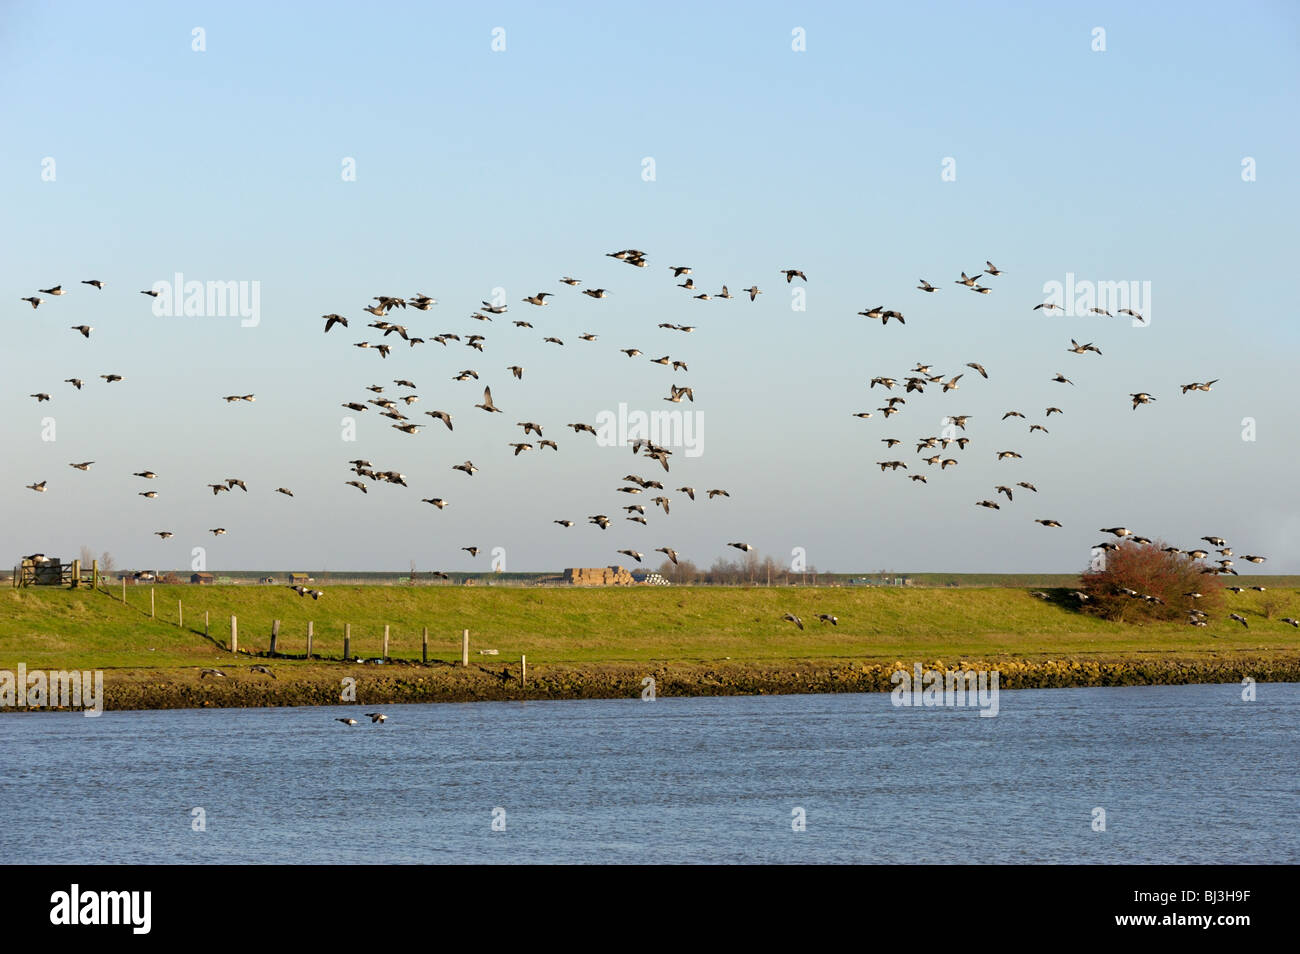 Brent Geese over the River Witham at Boston. - Stock Image